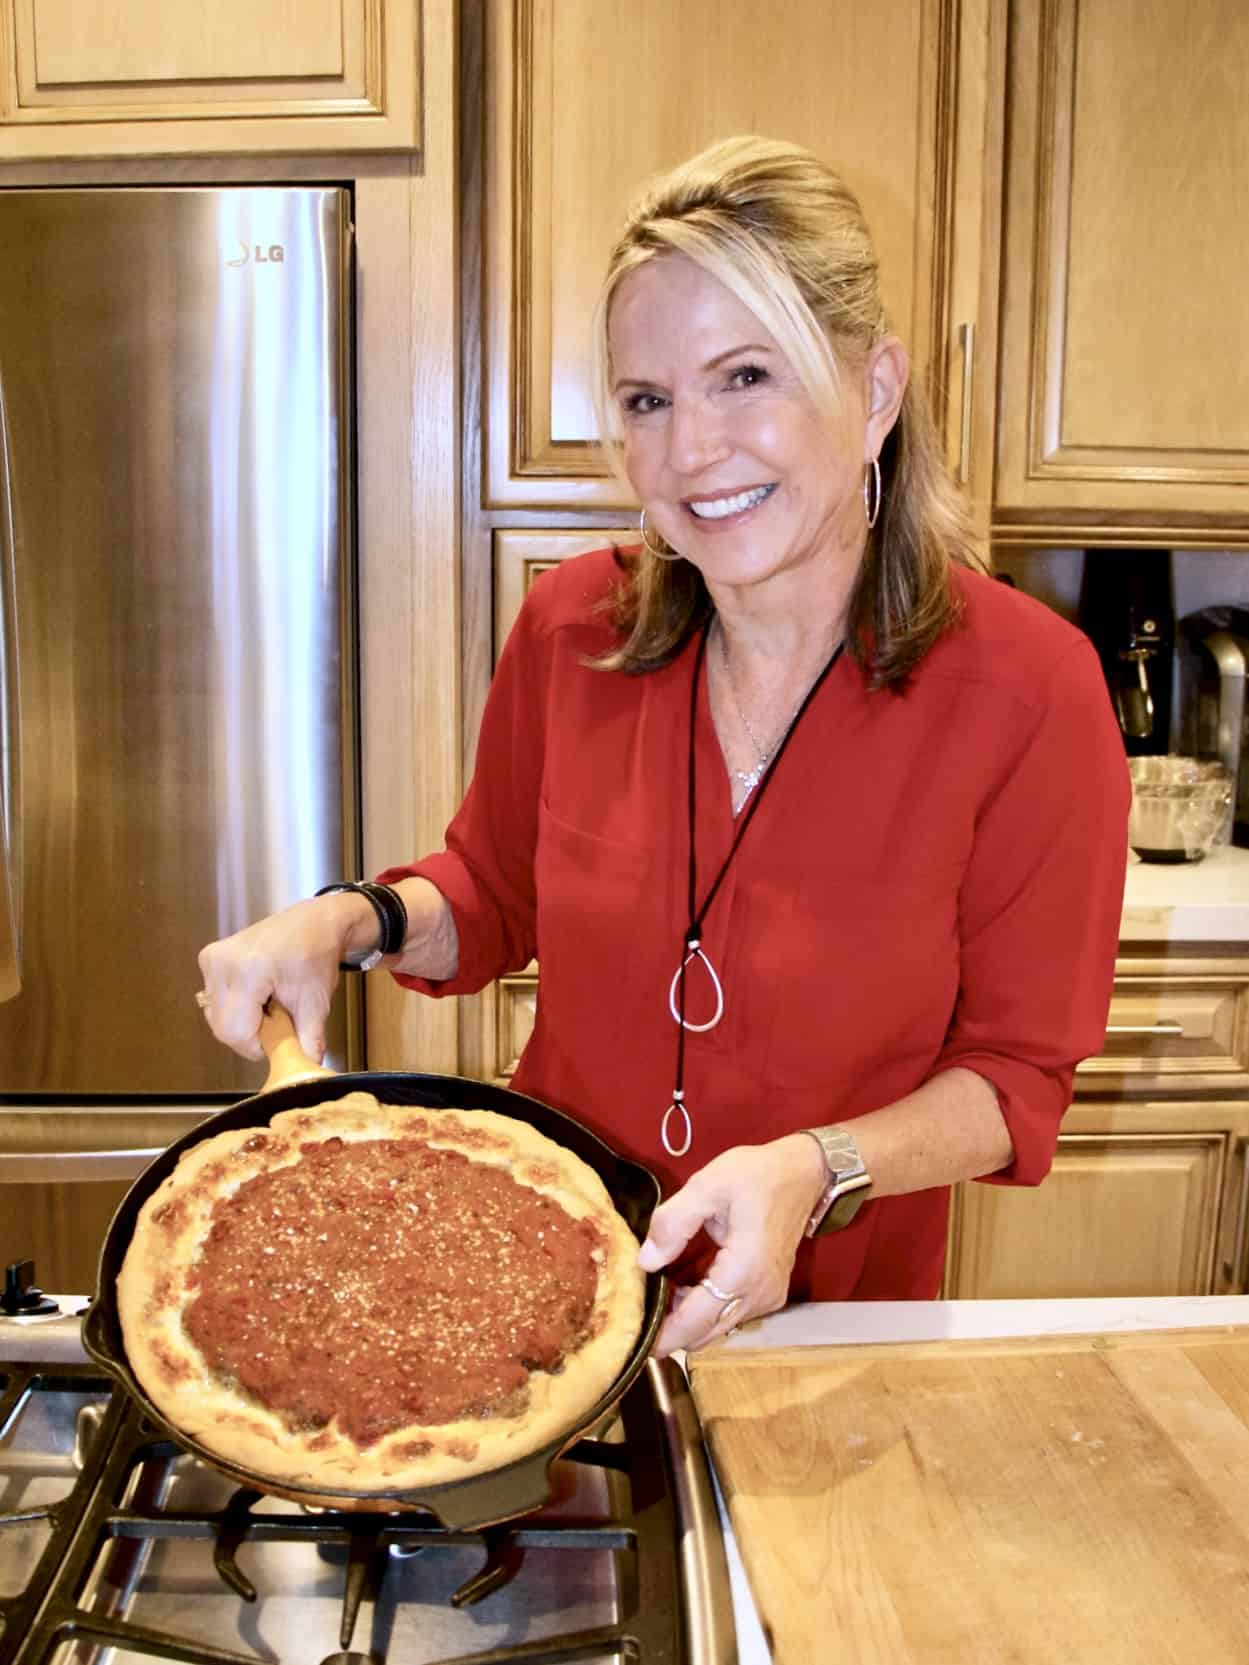 A woman wearing a red shirt showing her pizza in a cast iron skillet.